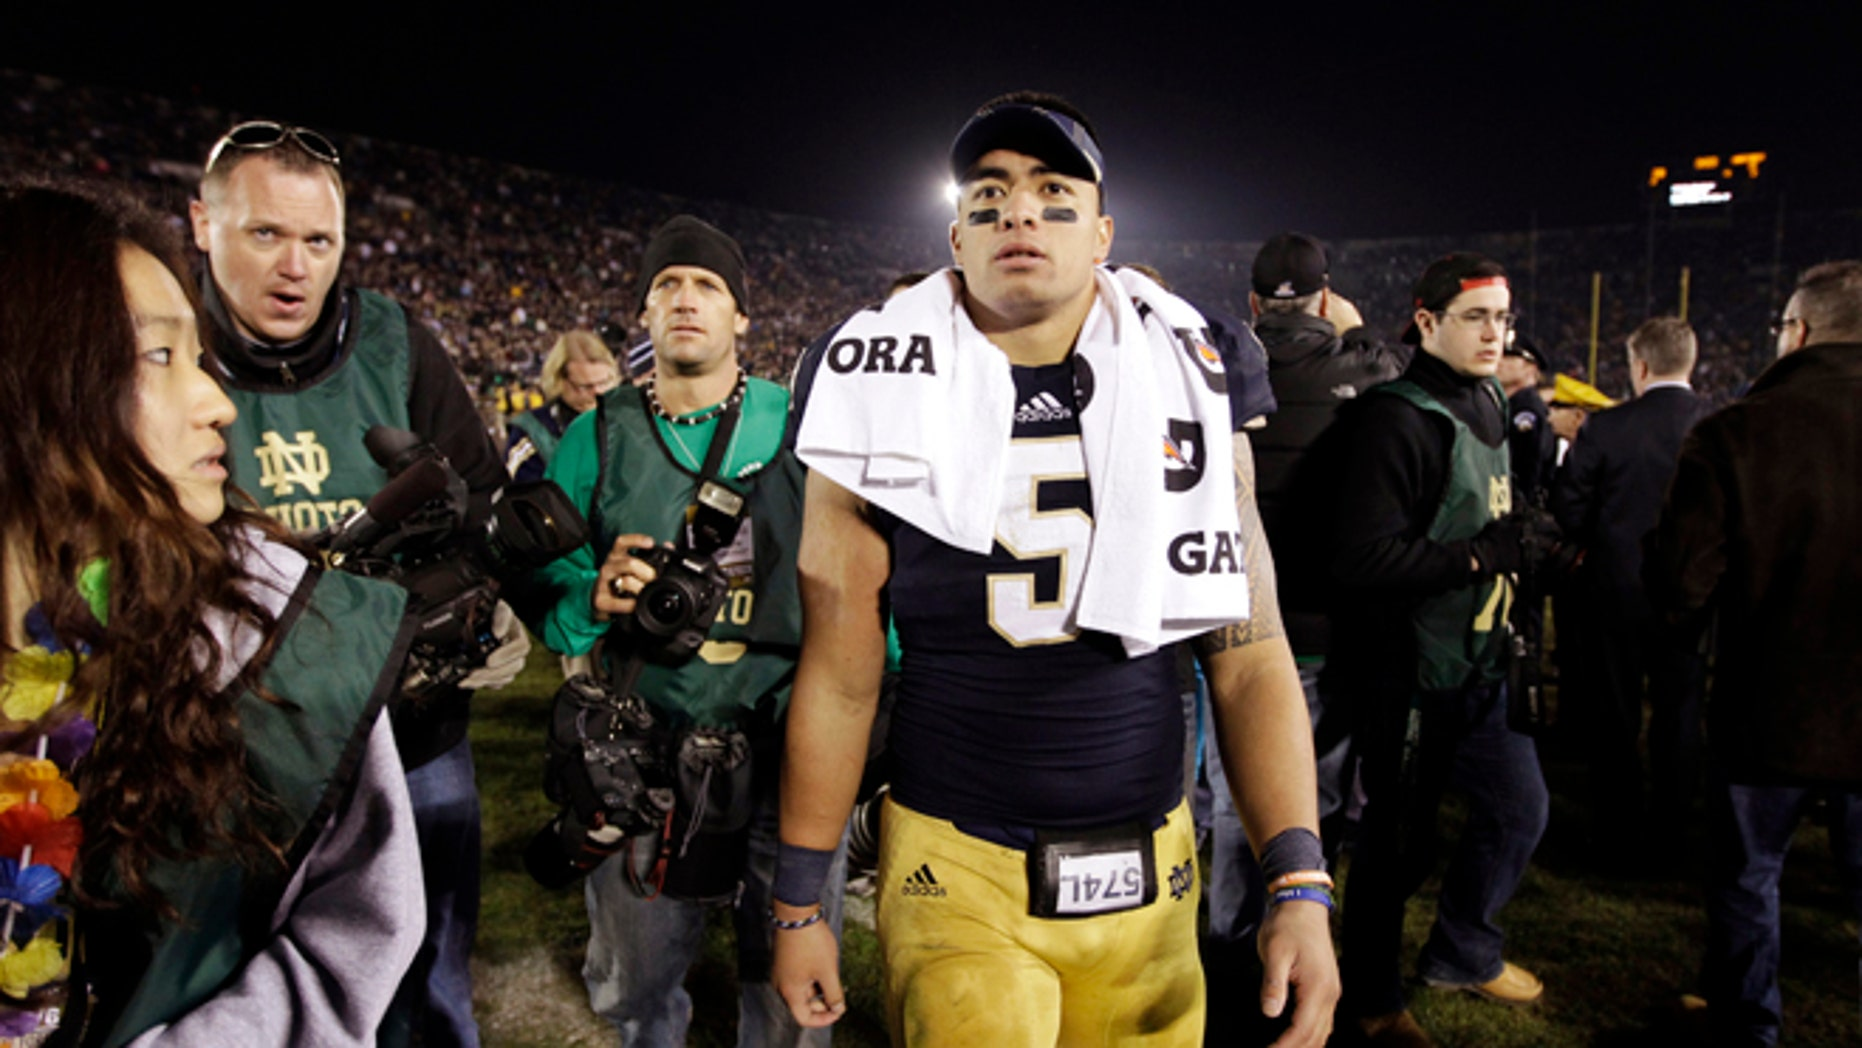 Nov. 17, 2012: In this file photo, Notre Dame linebacker Manti Te'o walks off the field following an NCAA college football game against Wake Forest in South Bend, Ind.